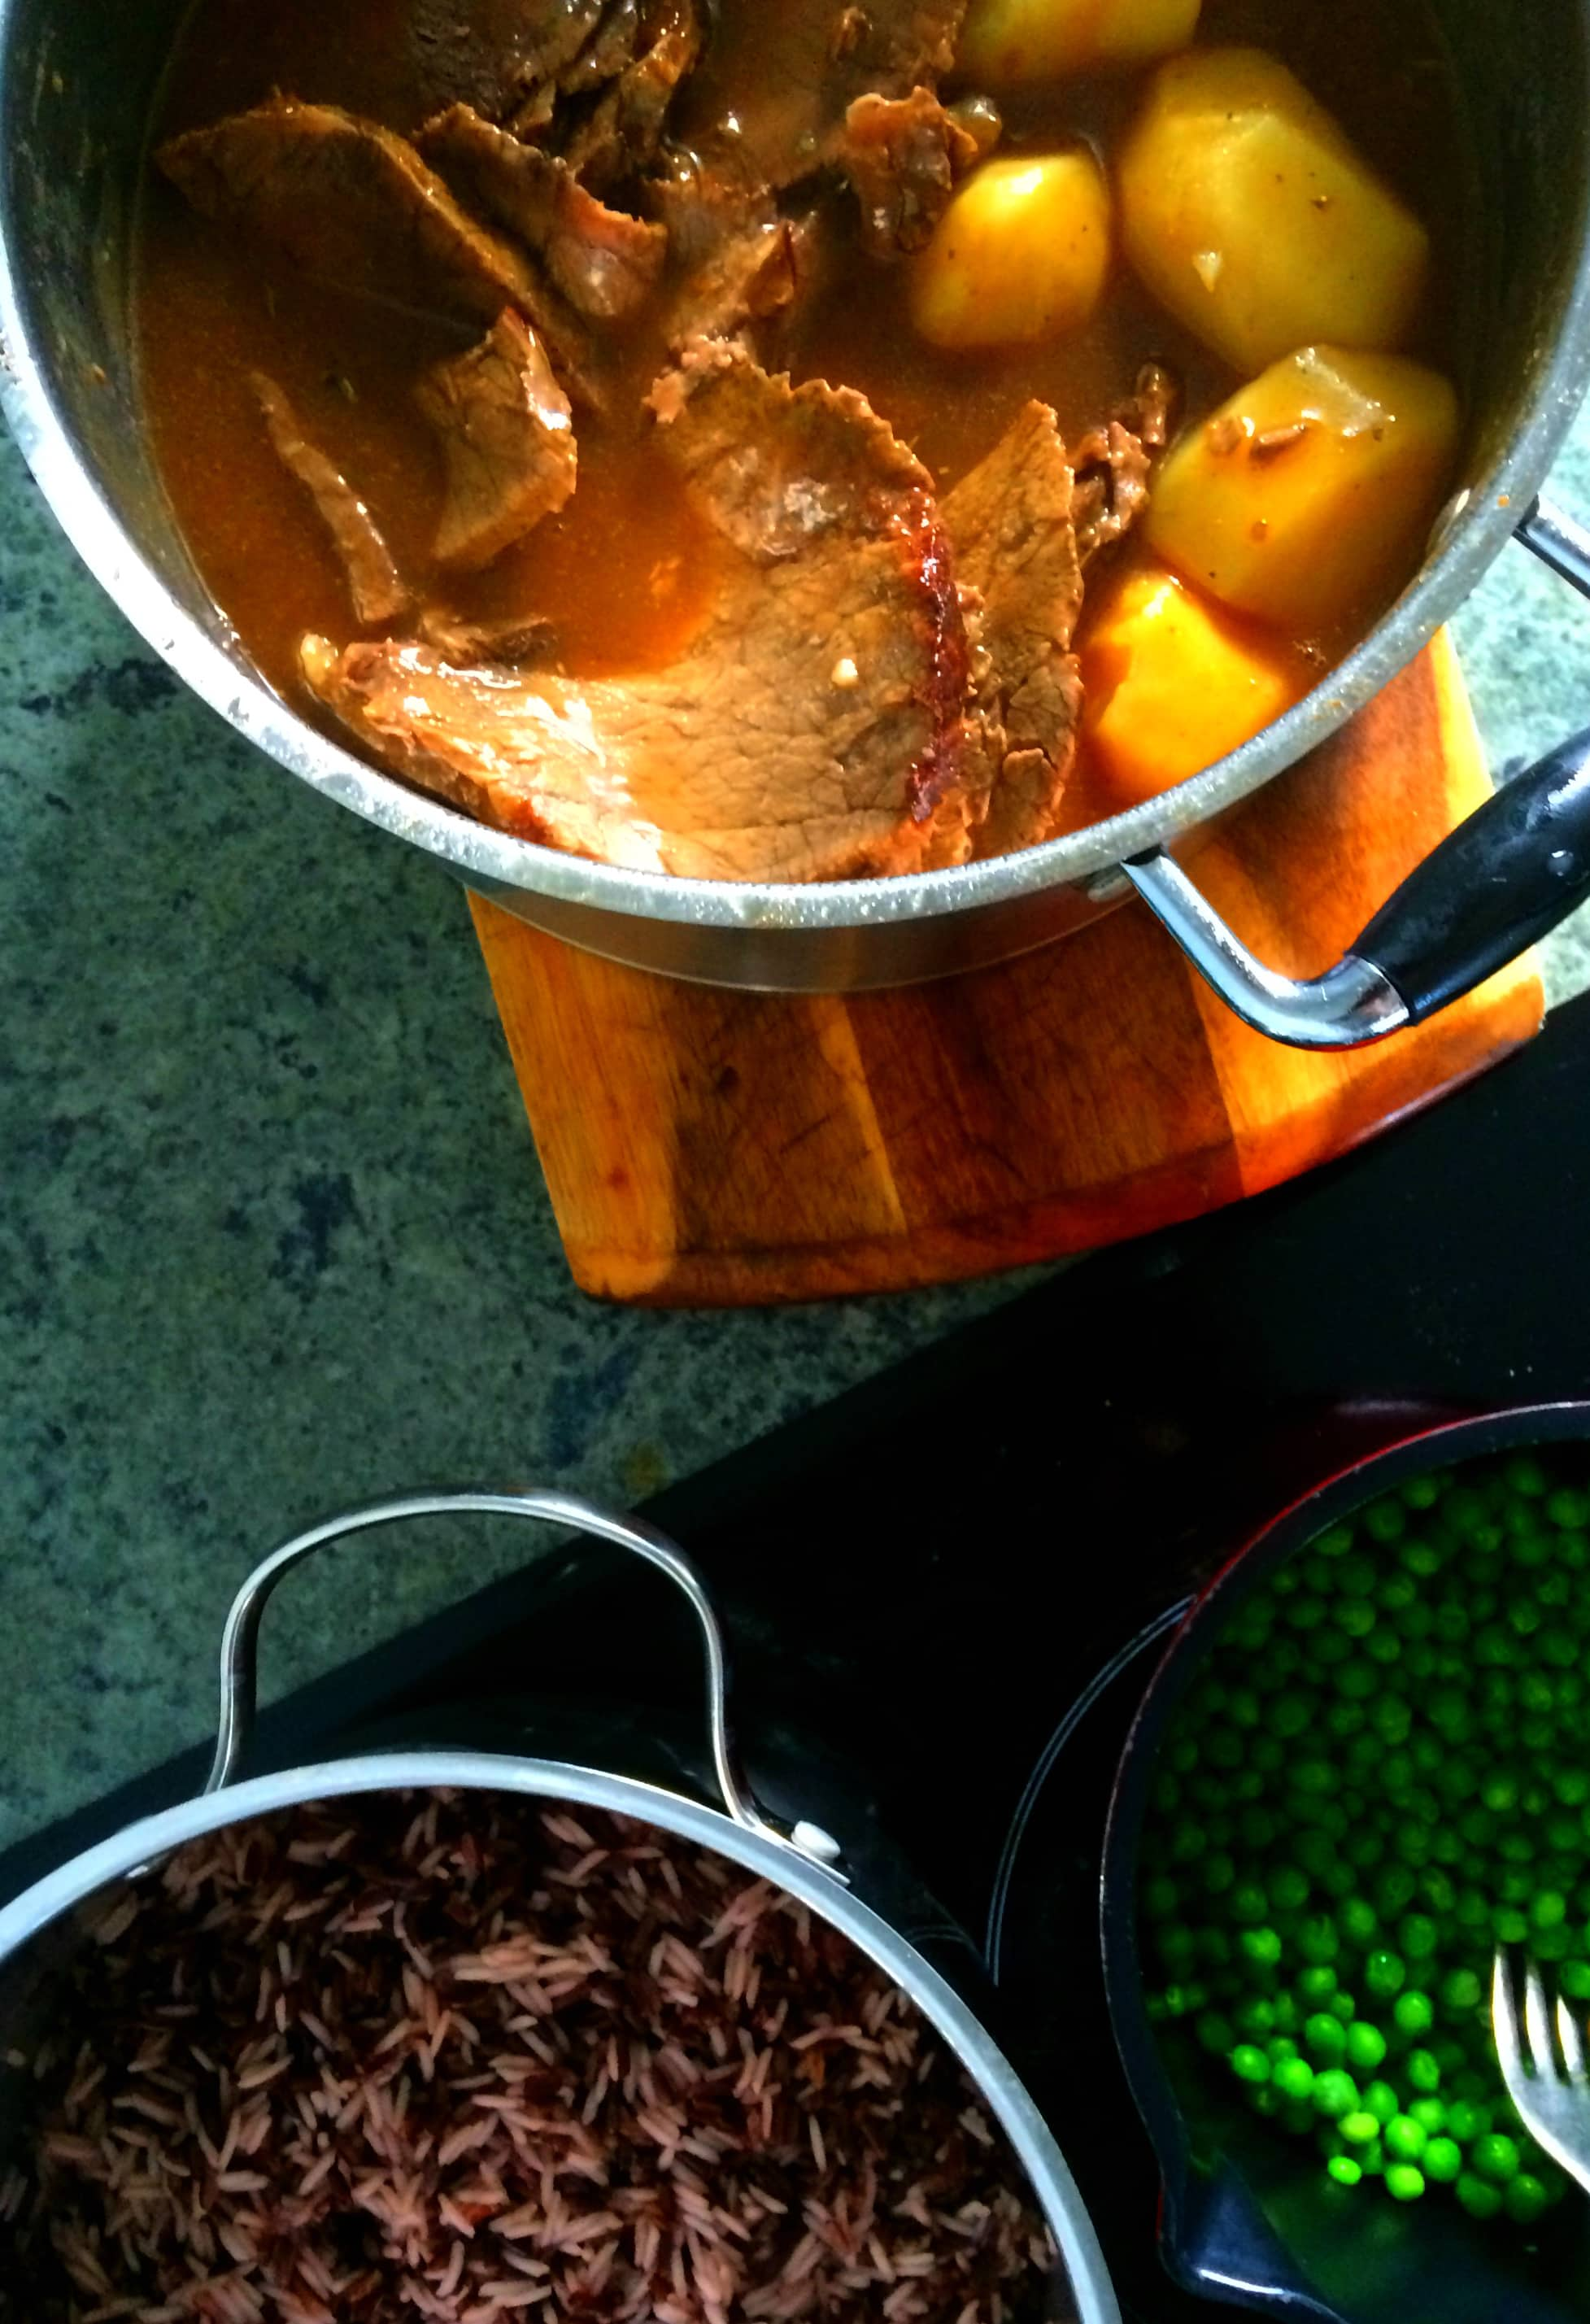 Family favorite - beef pot roast with buttered peas and domino rice.